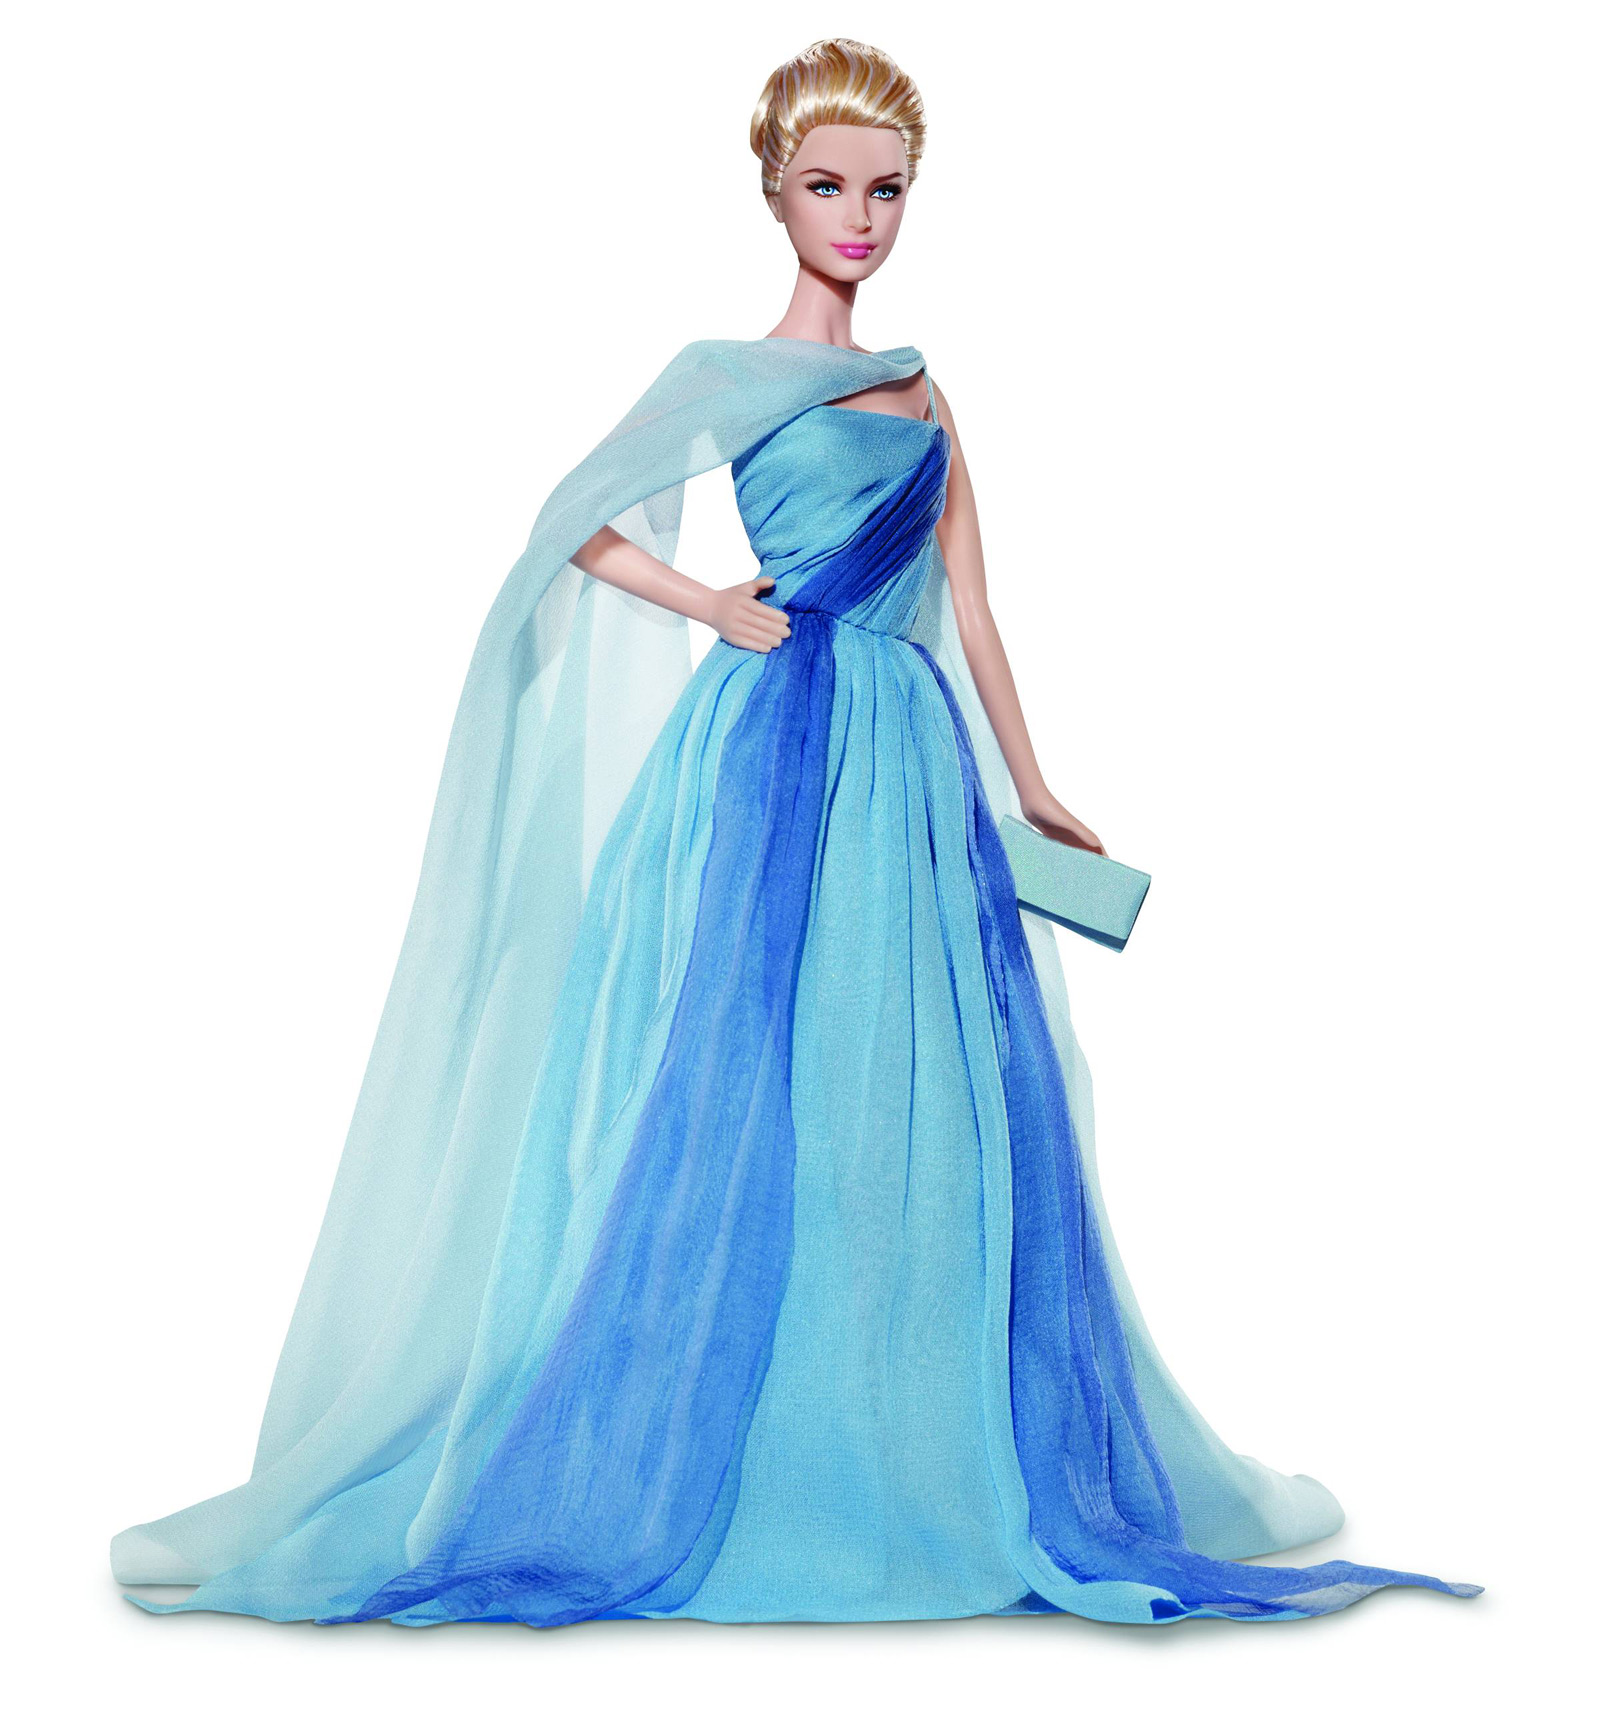 Limited Edition Grace Kelly Barbie Dolls - eXtravaganzi